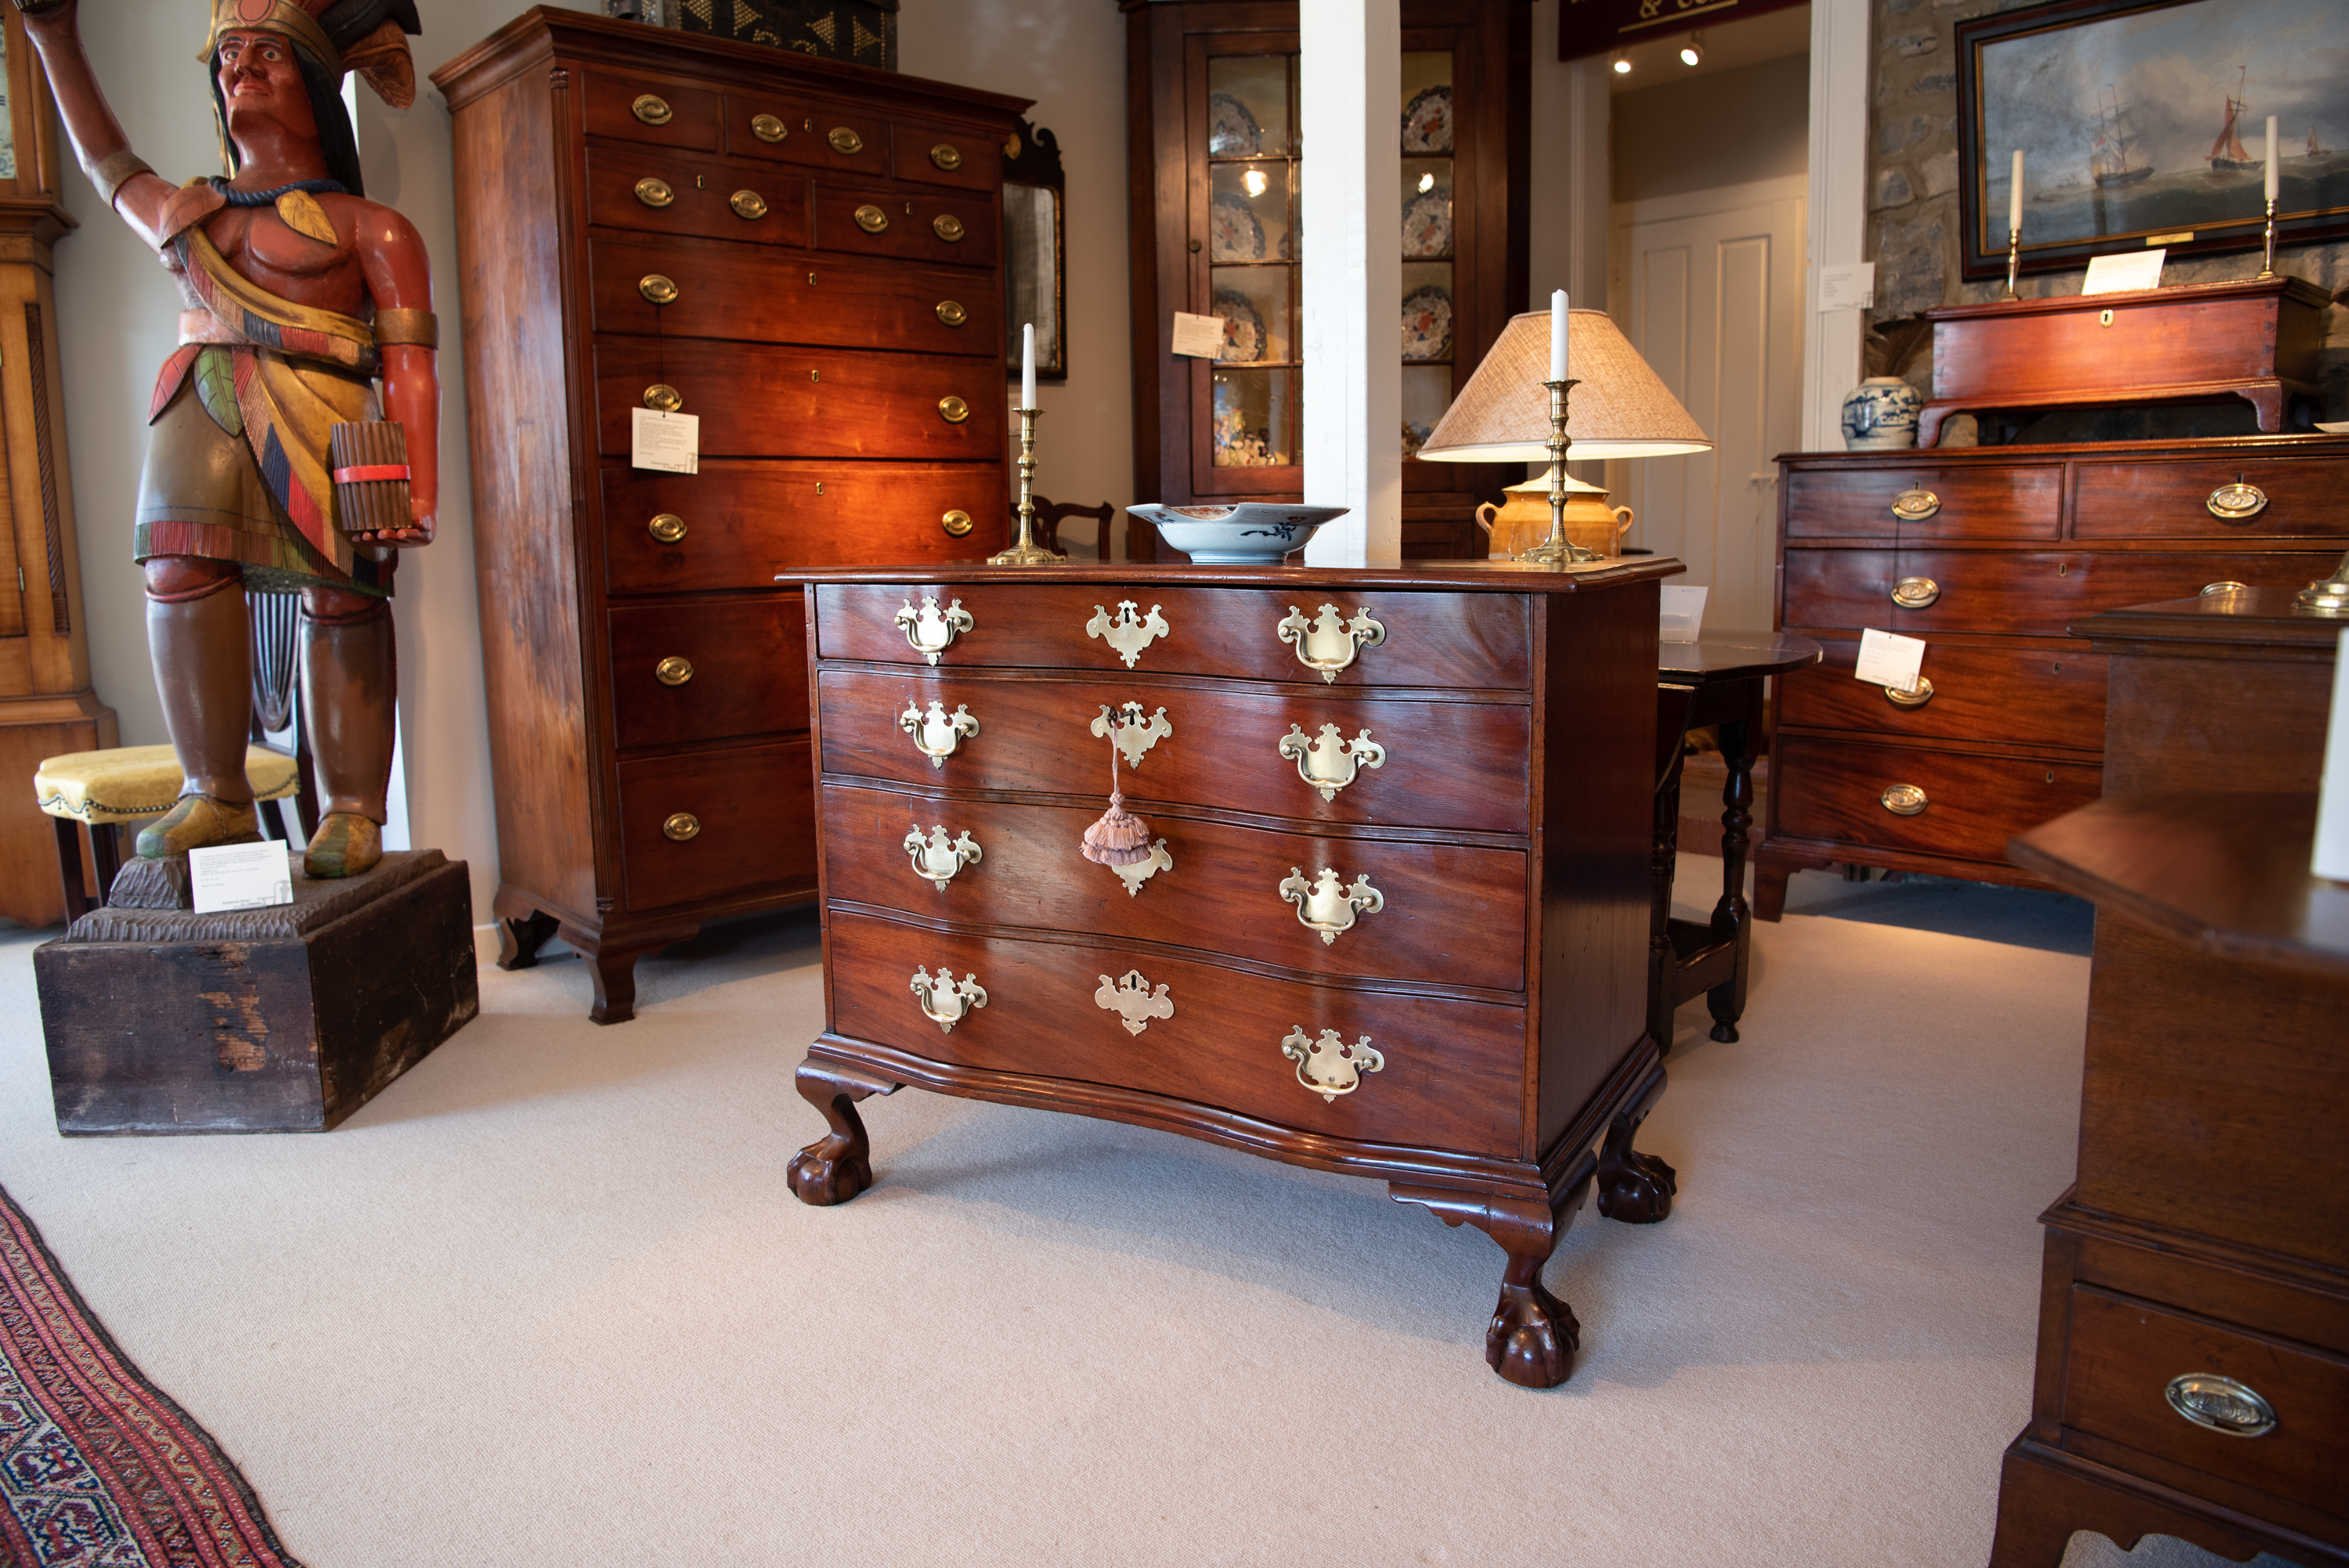 Chippendale Mahogany Serpentine Front Chest Of Drawers. The Rectangular Top With Molded Edge And Serpentine Shaped Front, Above Four Graduated Serpentine Drawers